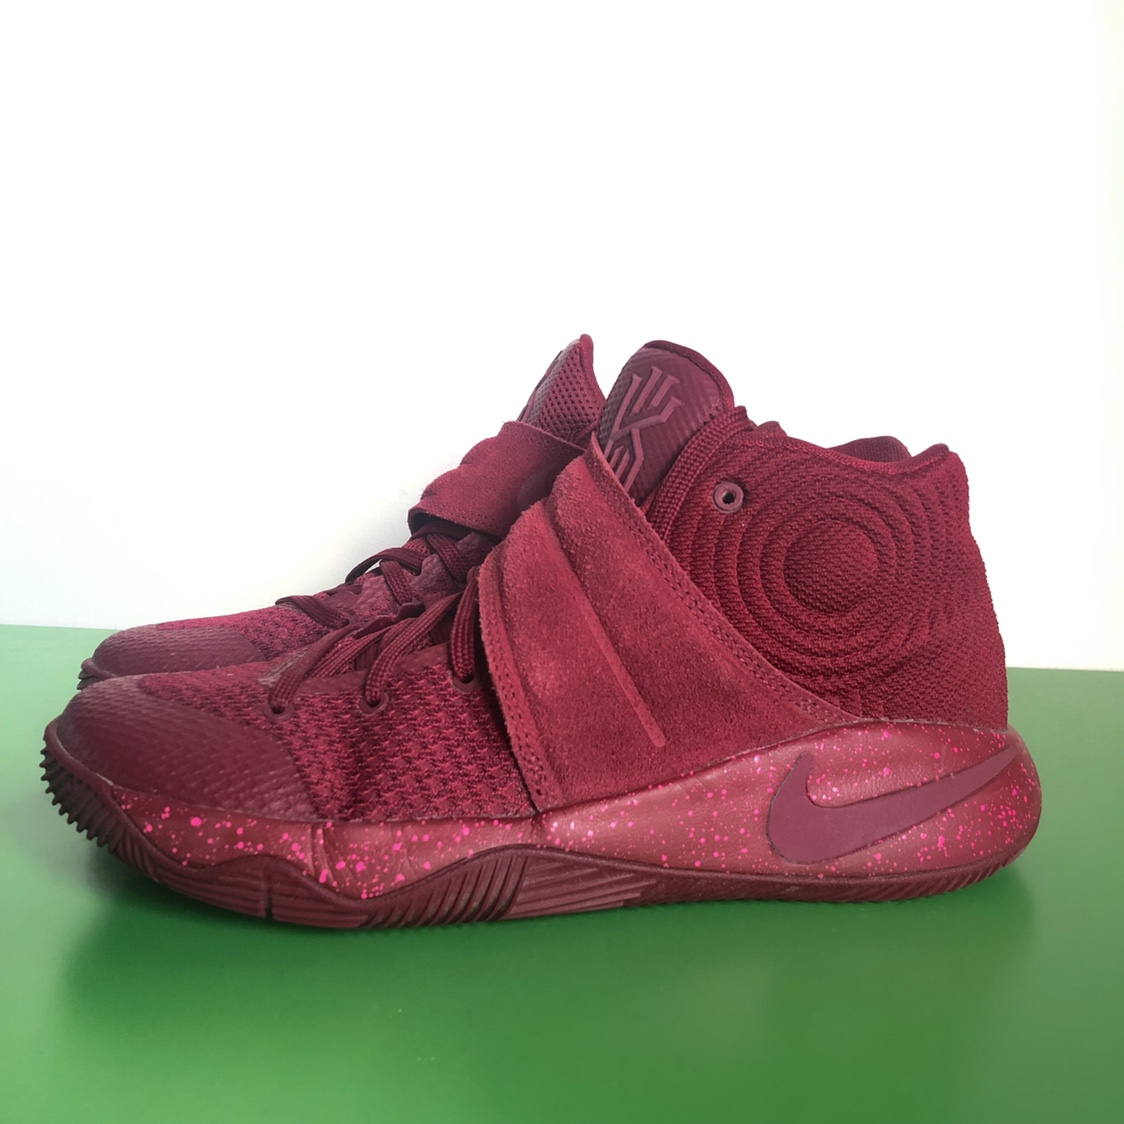 best sneakers 0dfc4 33b33 Nike Kyrie Irving 2 Red Velvet! Great condition!... - Depop